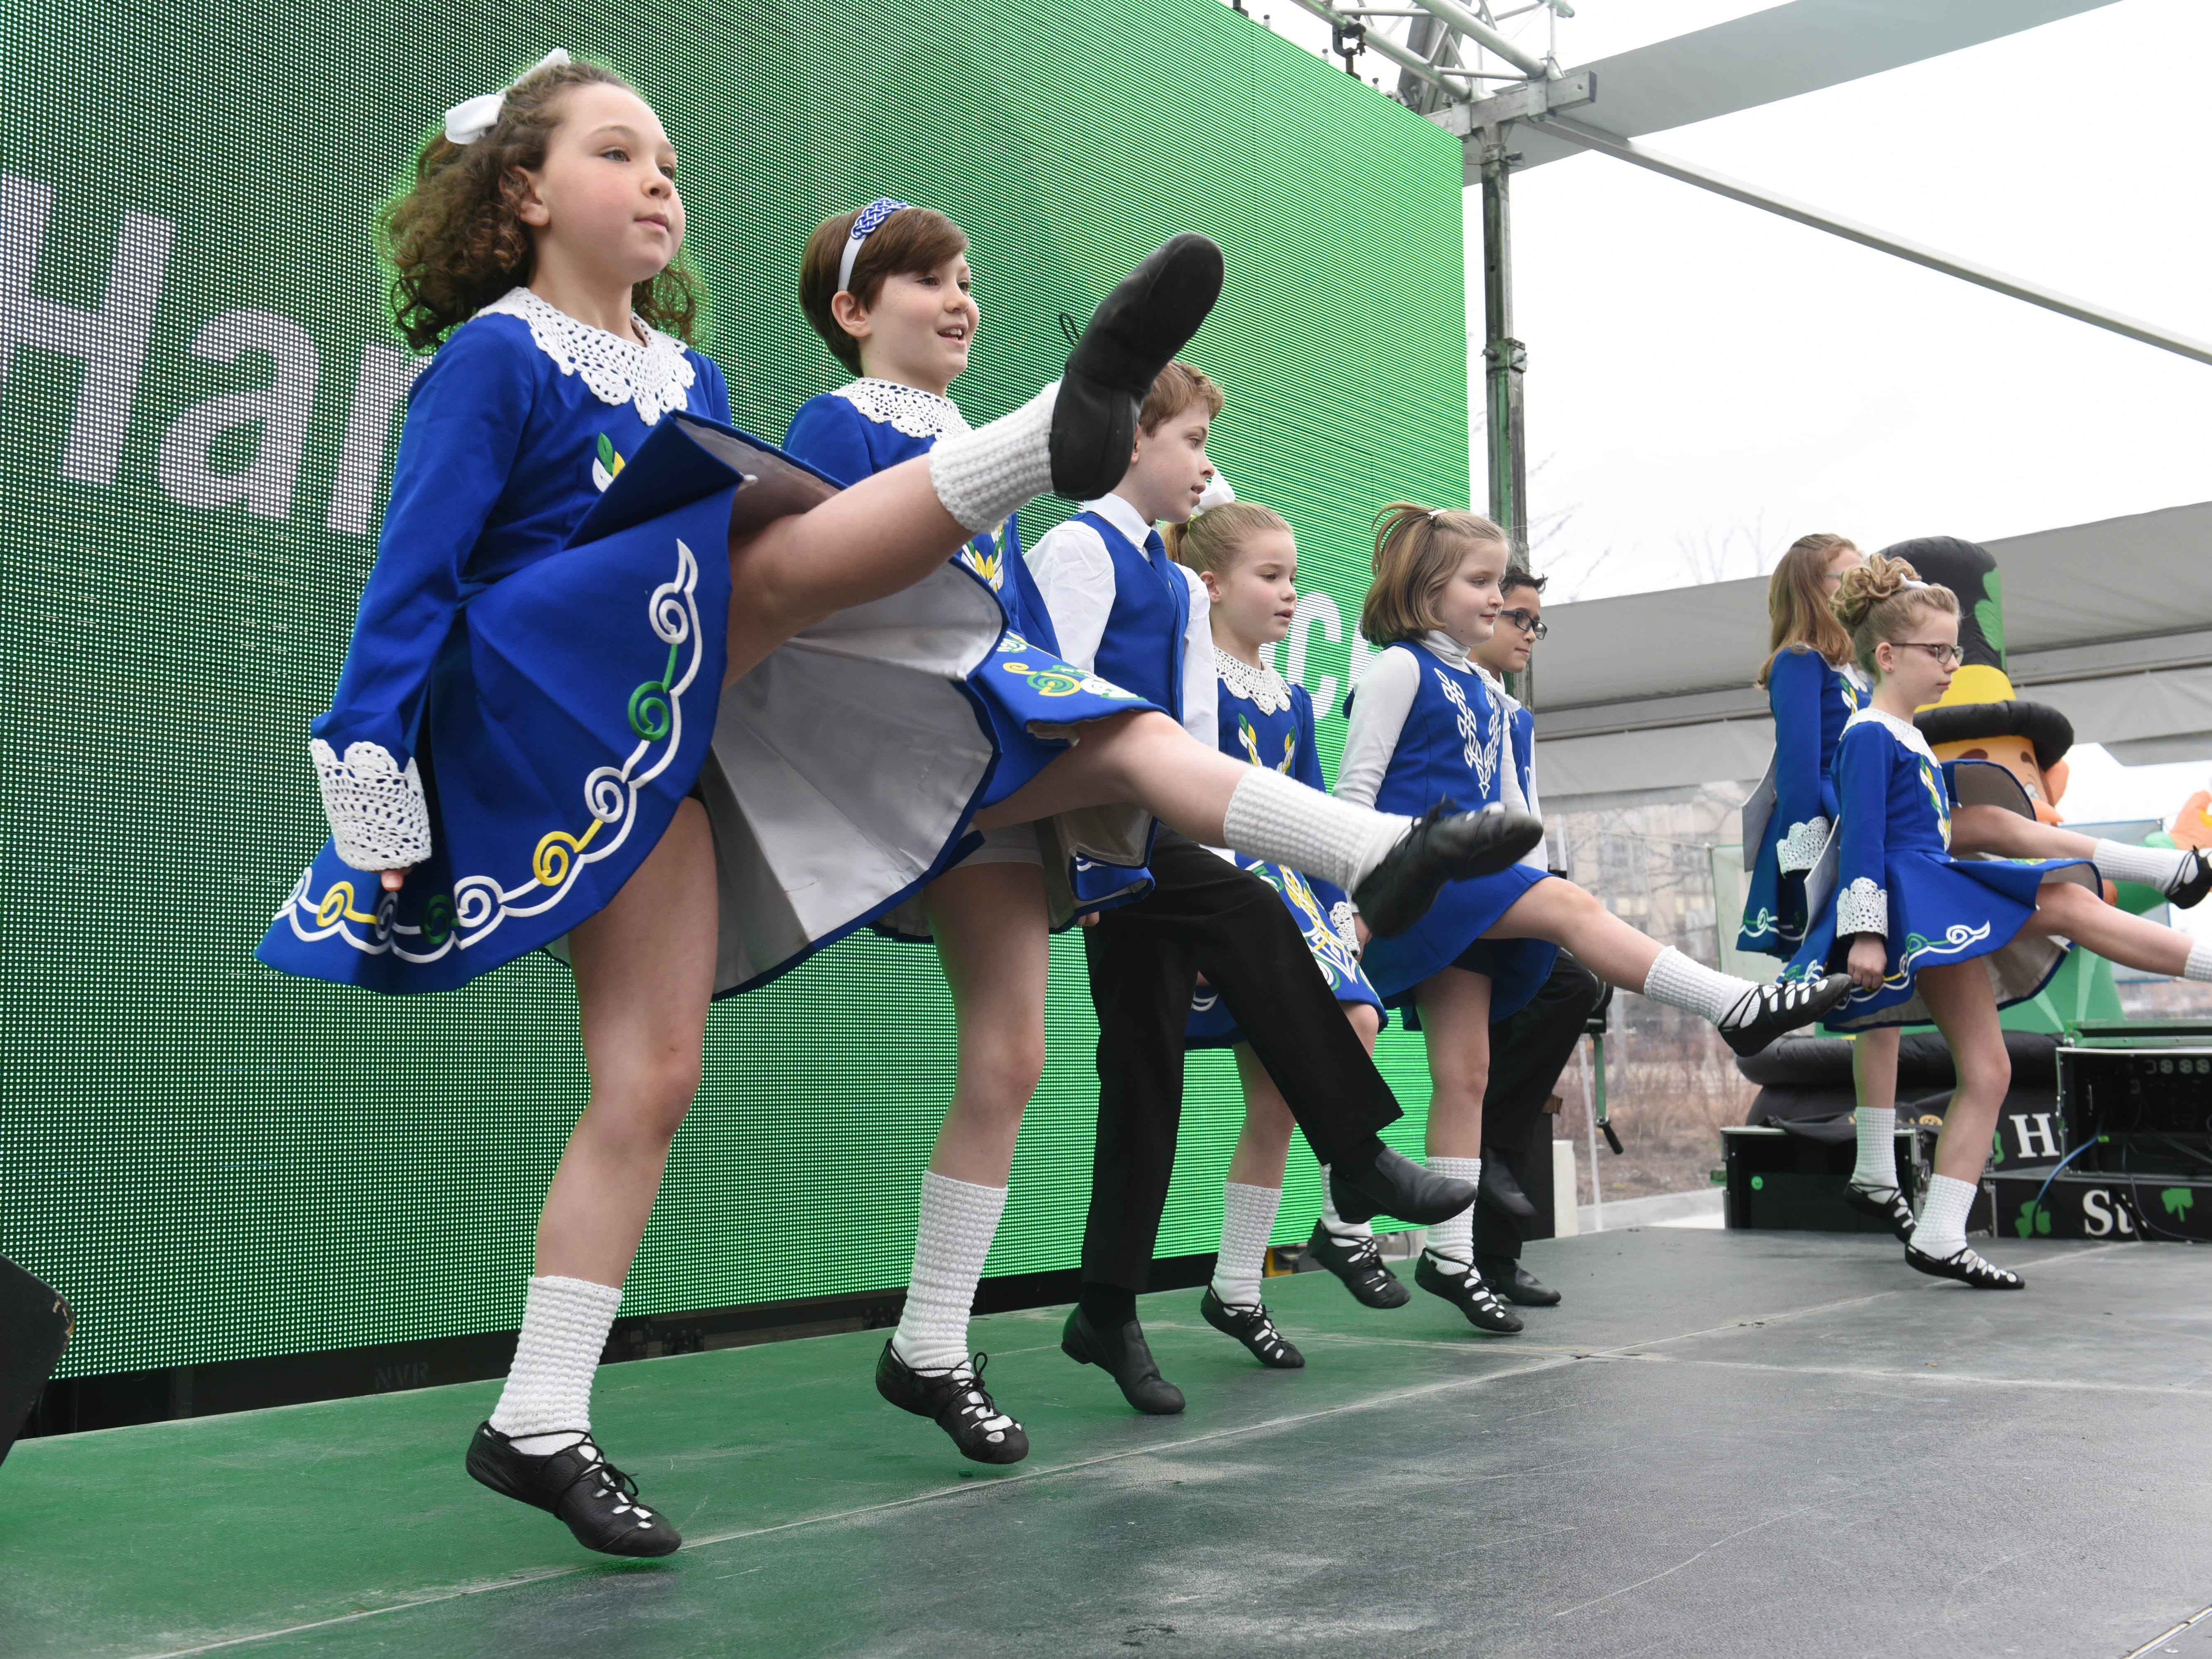 Members of the Tim O'Hare Irish Dance group of Ann Arbor/Plymouth perform on stage during the St. Patrick's Day Party at Beacon Park on Saturday, March 16, 2019.